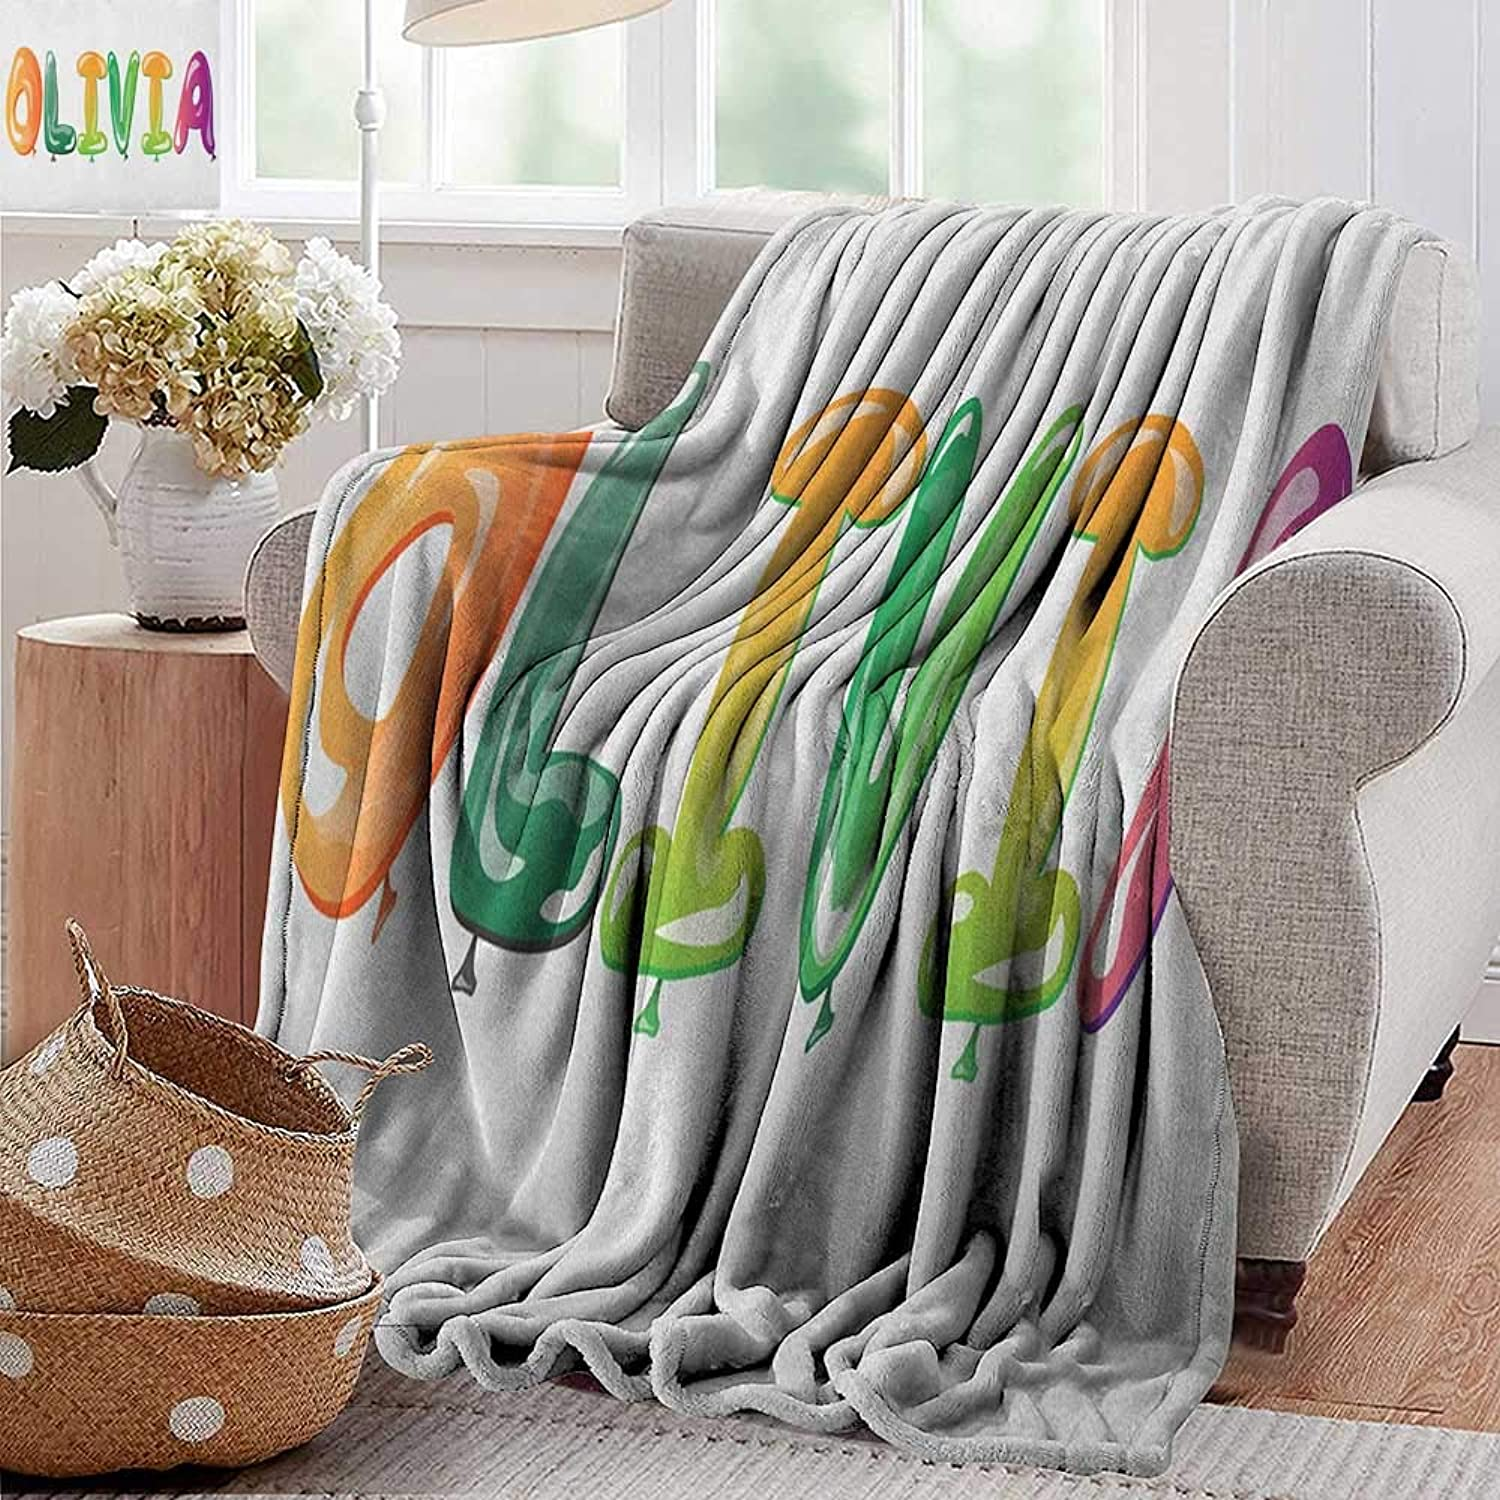 XavieraDoherty Camping Blanket,Olivia,Well-Known Traditional Girl Name with Medieval Roots Modern Funny Party Letters, Multicolor,Flannel Blankets Made with Plush Microfiber 35 x60